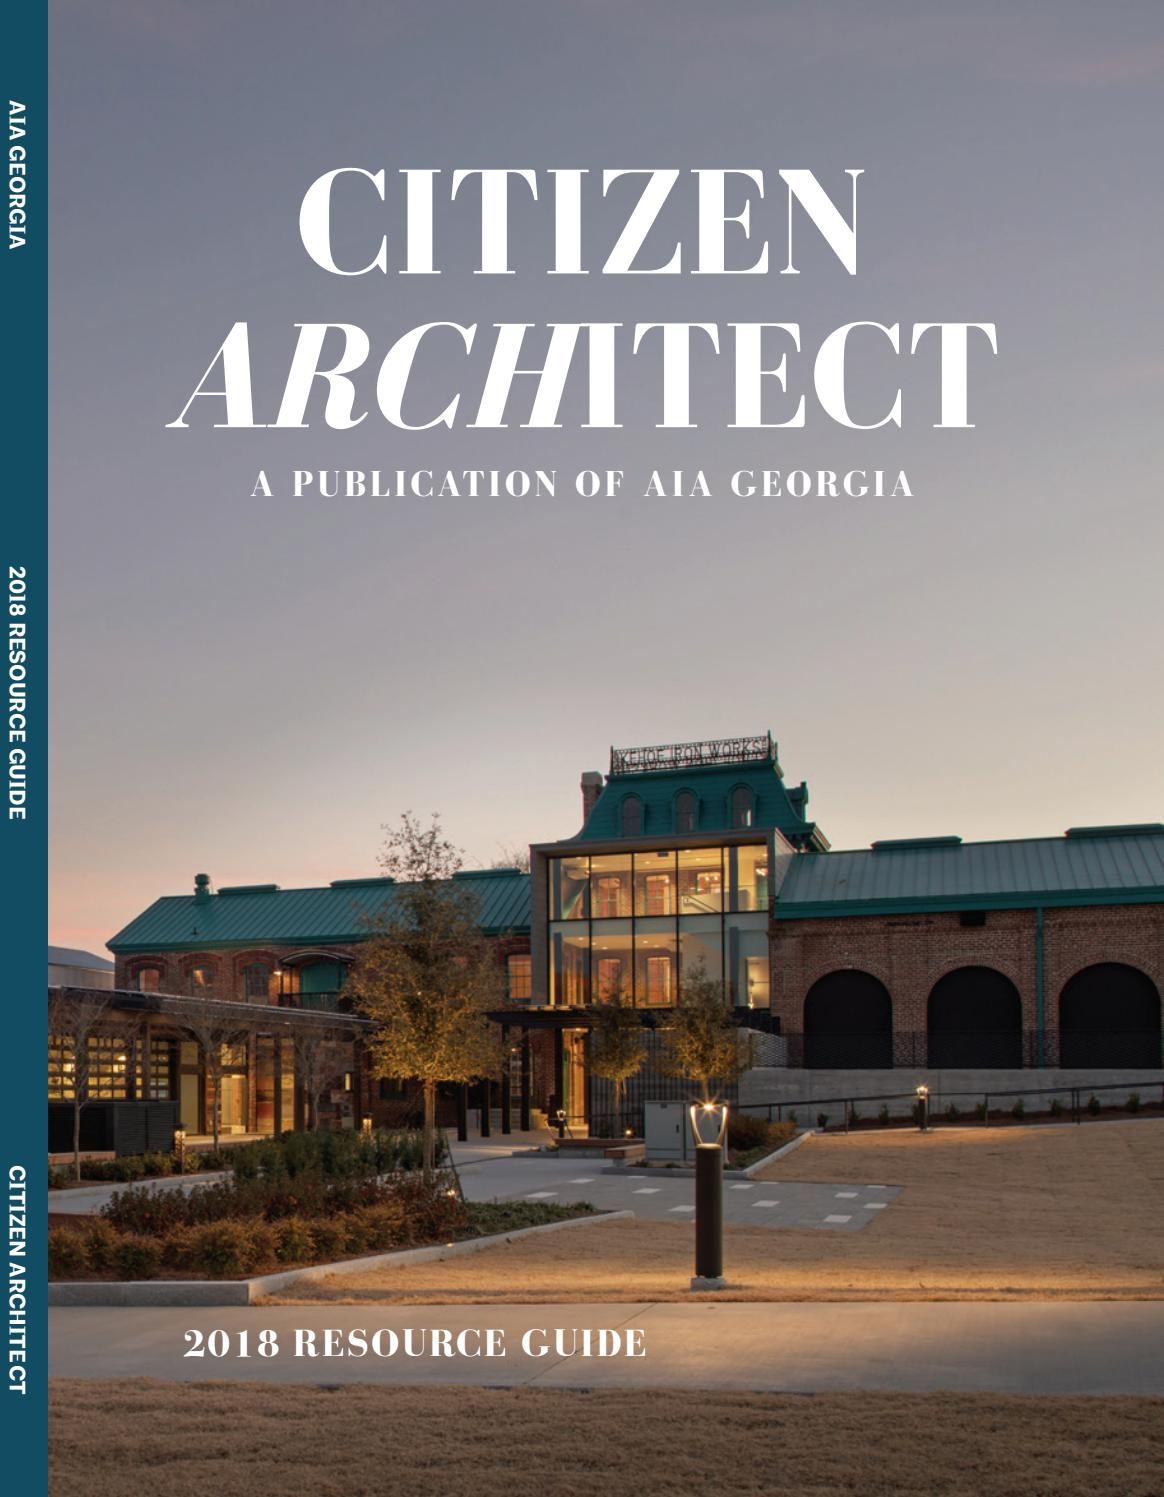 2018 Resource Guide by AIA Georgia - issuu